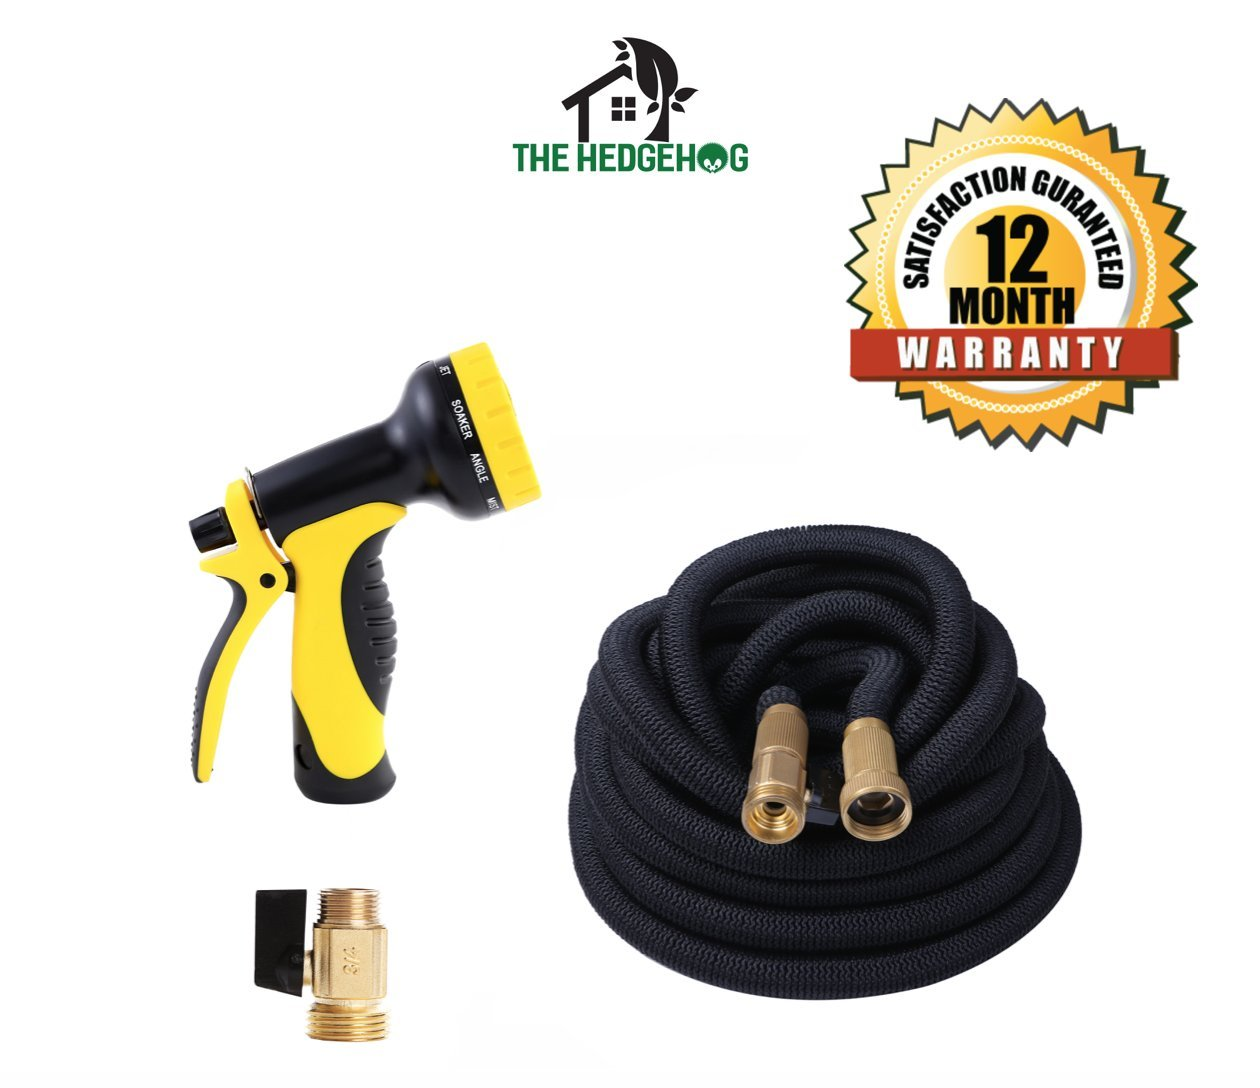 NEW Expandable Garden Hose with Brass Connectors, 10-Pattern Spray Nozzle. High Pressure. Great flexible hose for all of your watering needs! A must add hose pipe for your gardening tools! (100 feet)